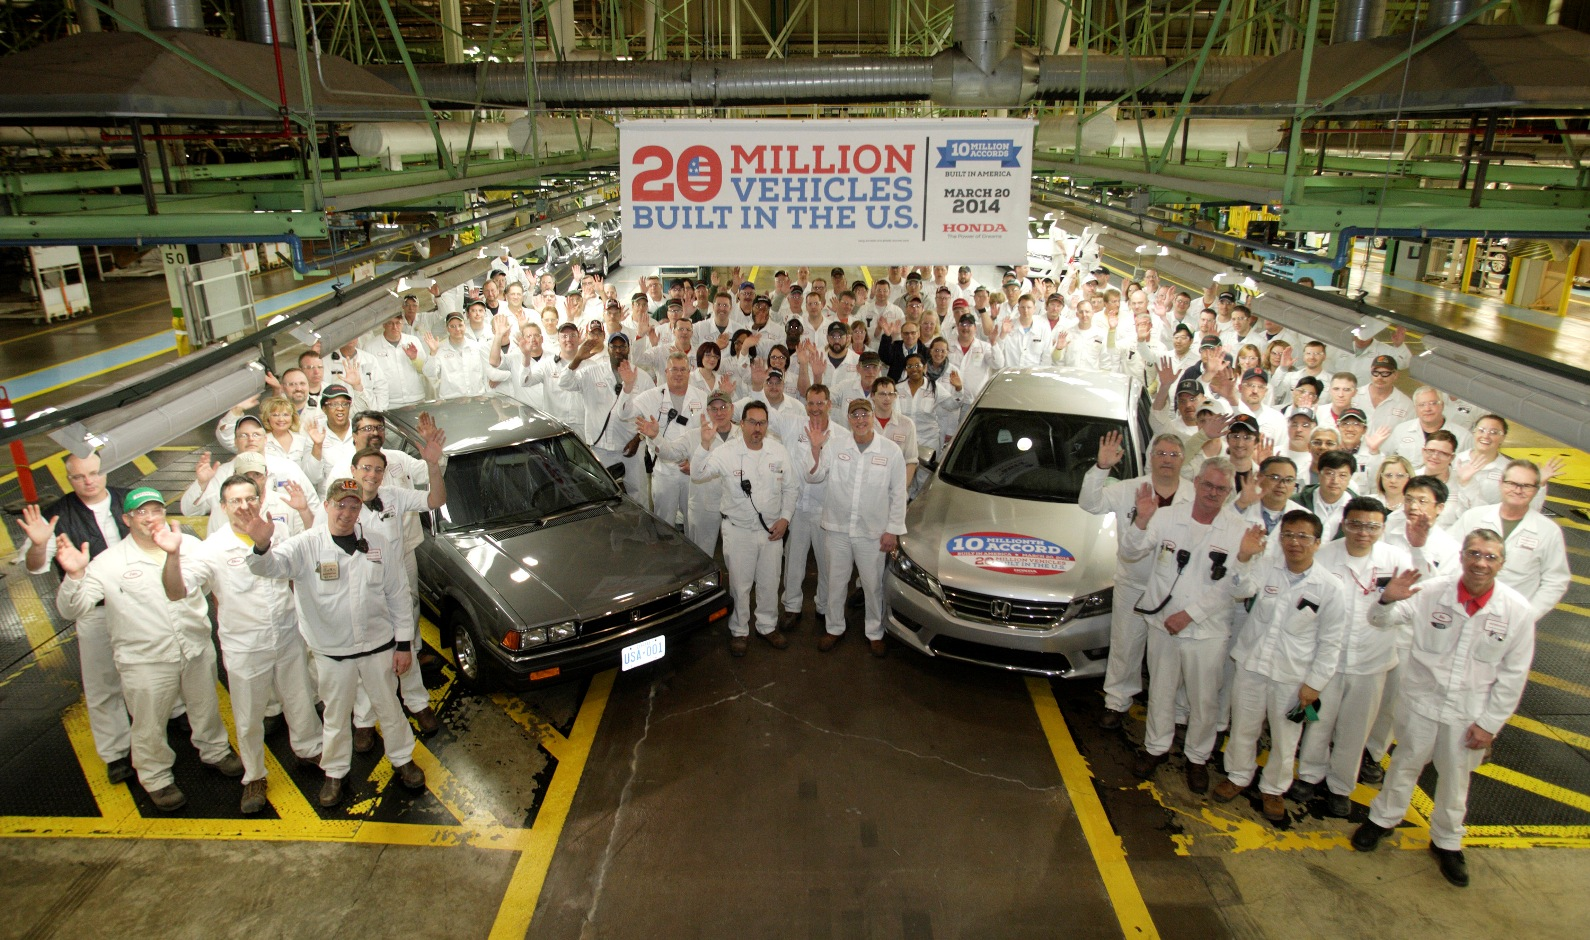 2014 - 10 Million Accords